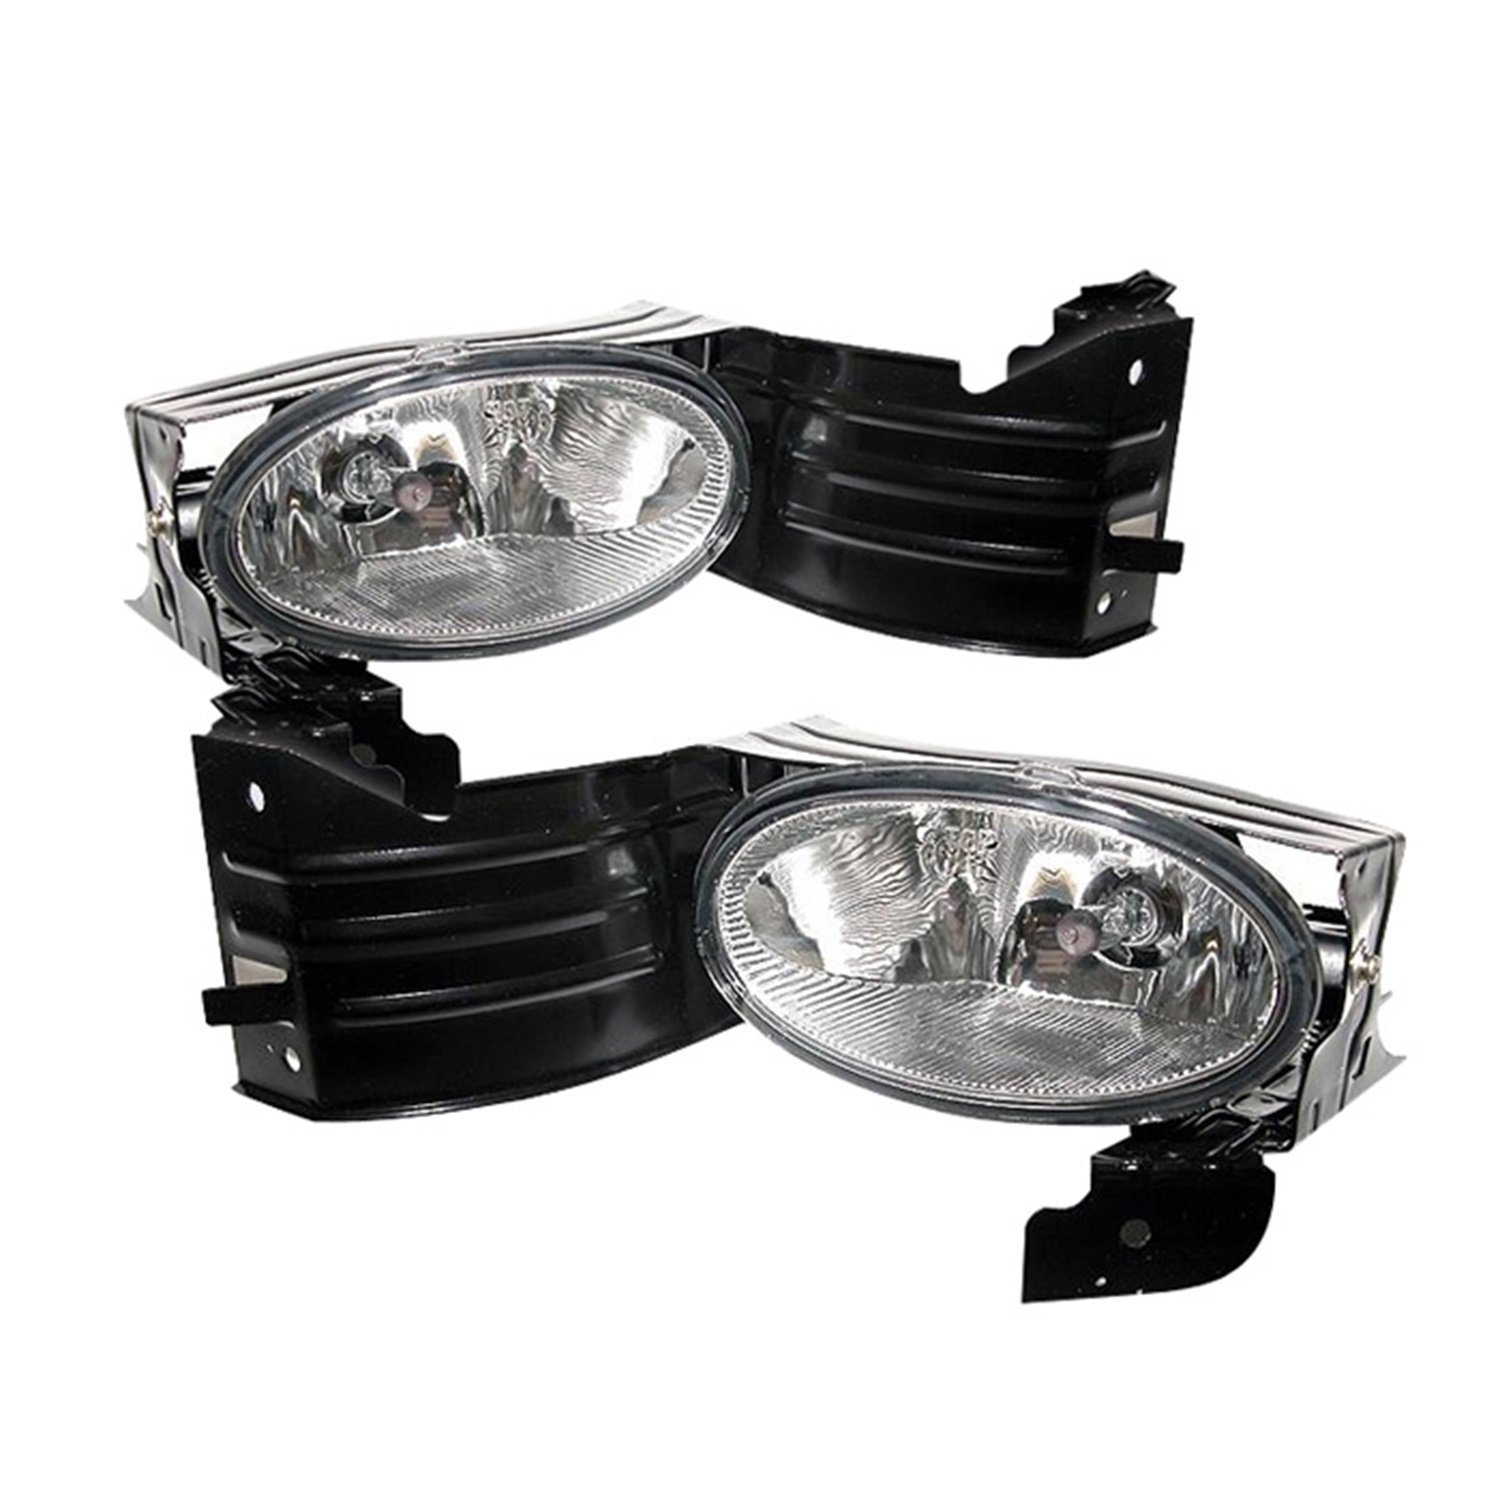 71CszAcEHaL._SL1500_ amazon com 08 09 honda accord 2dr oem style clear fog lights kit 2008 honda accord fog light wiring diagram at reclaimingppi.co